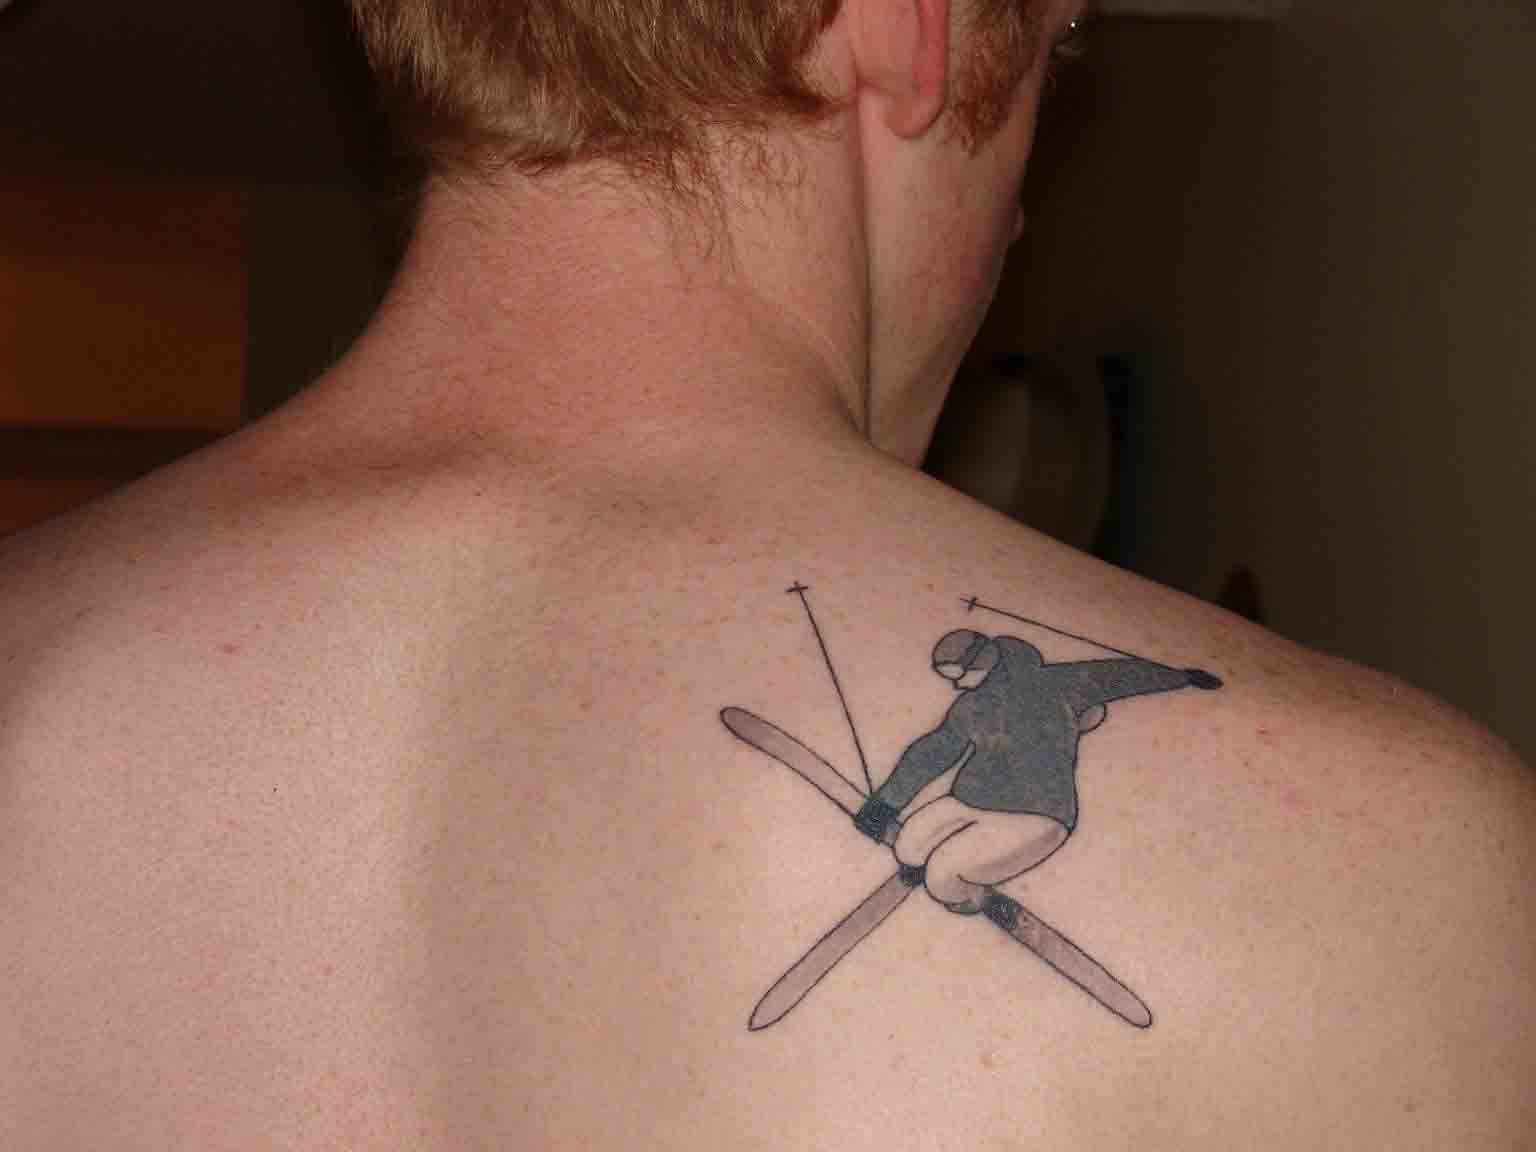 My skiier tatoo